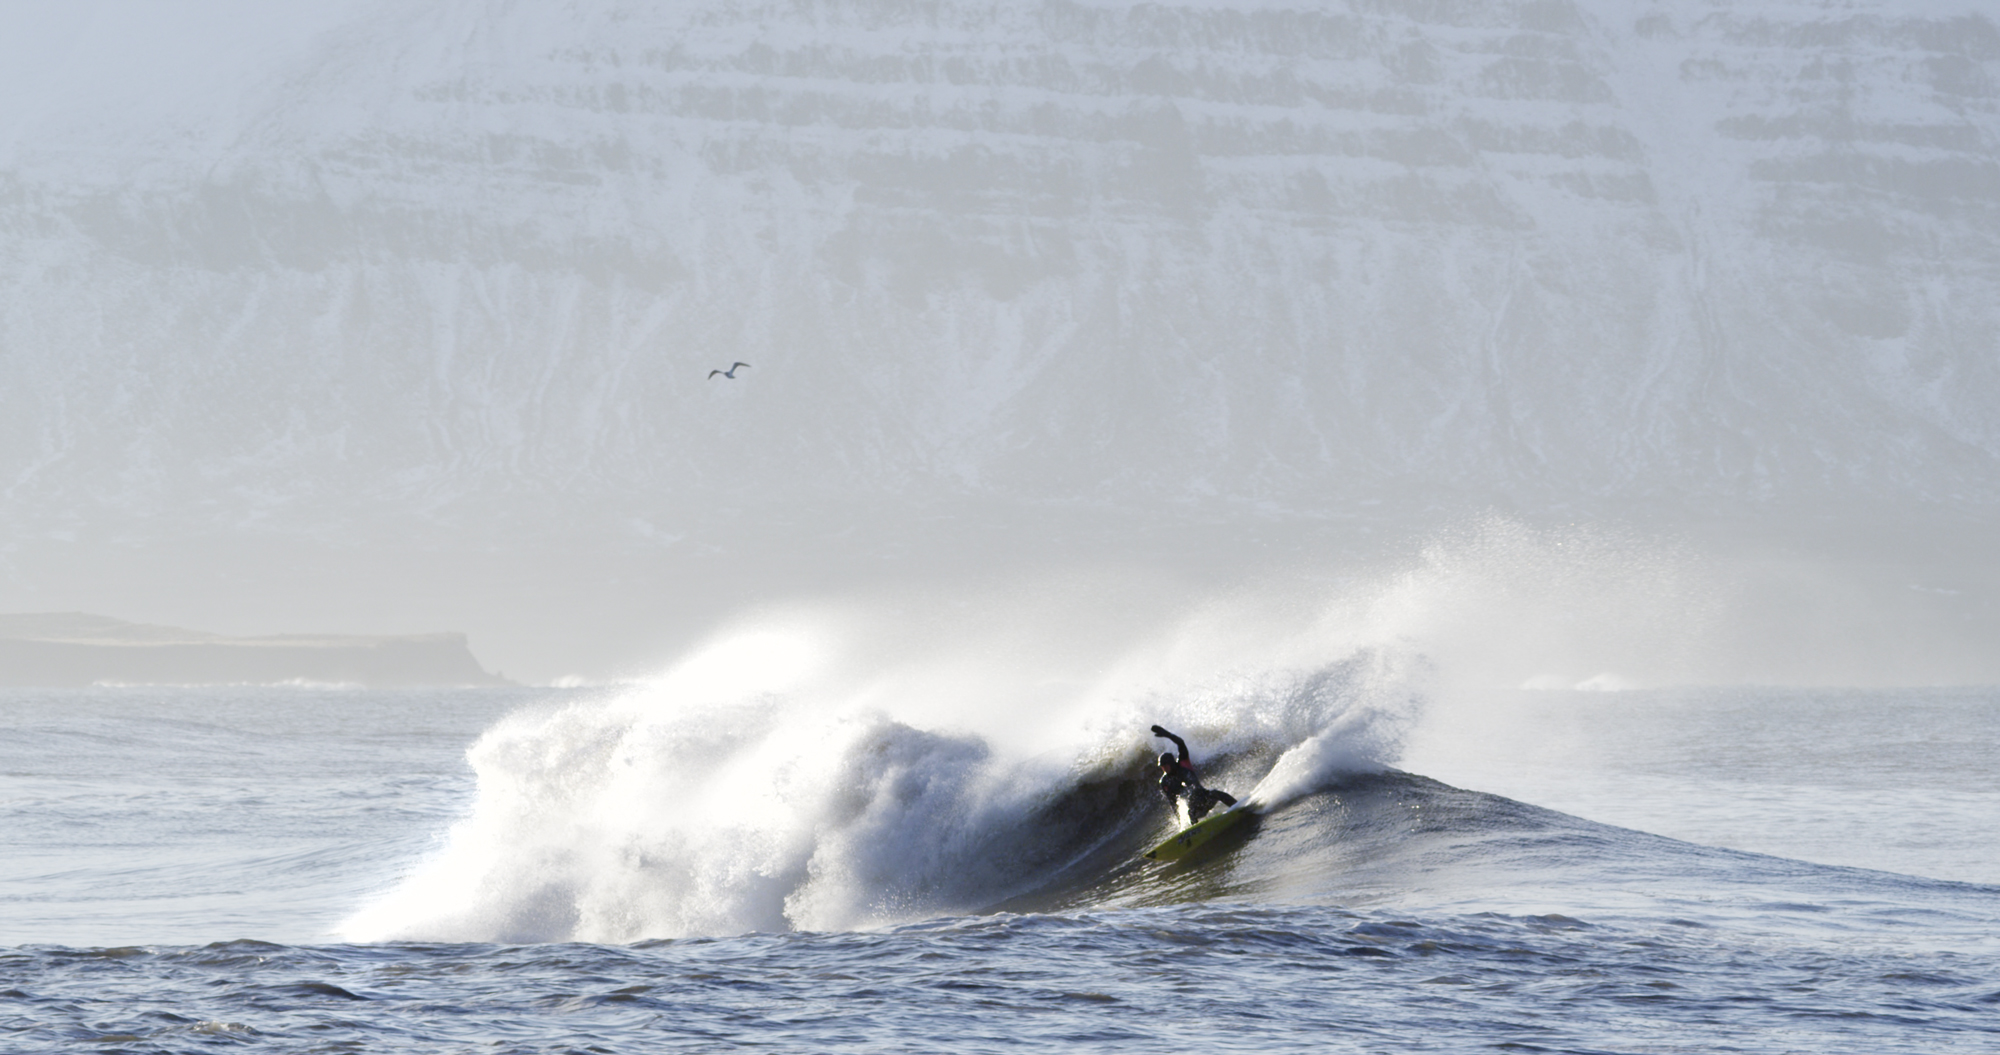 """Surfer in Iceland from the film """"YOW: Icelandic for Yes"""""""